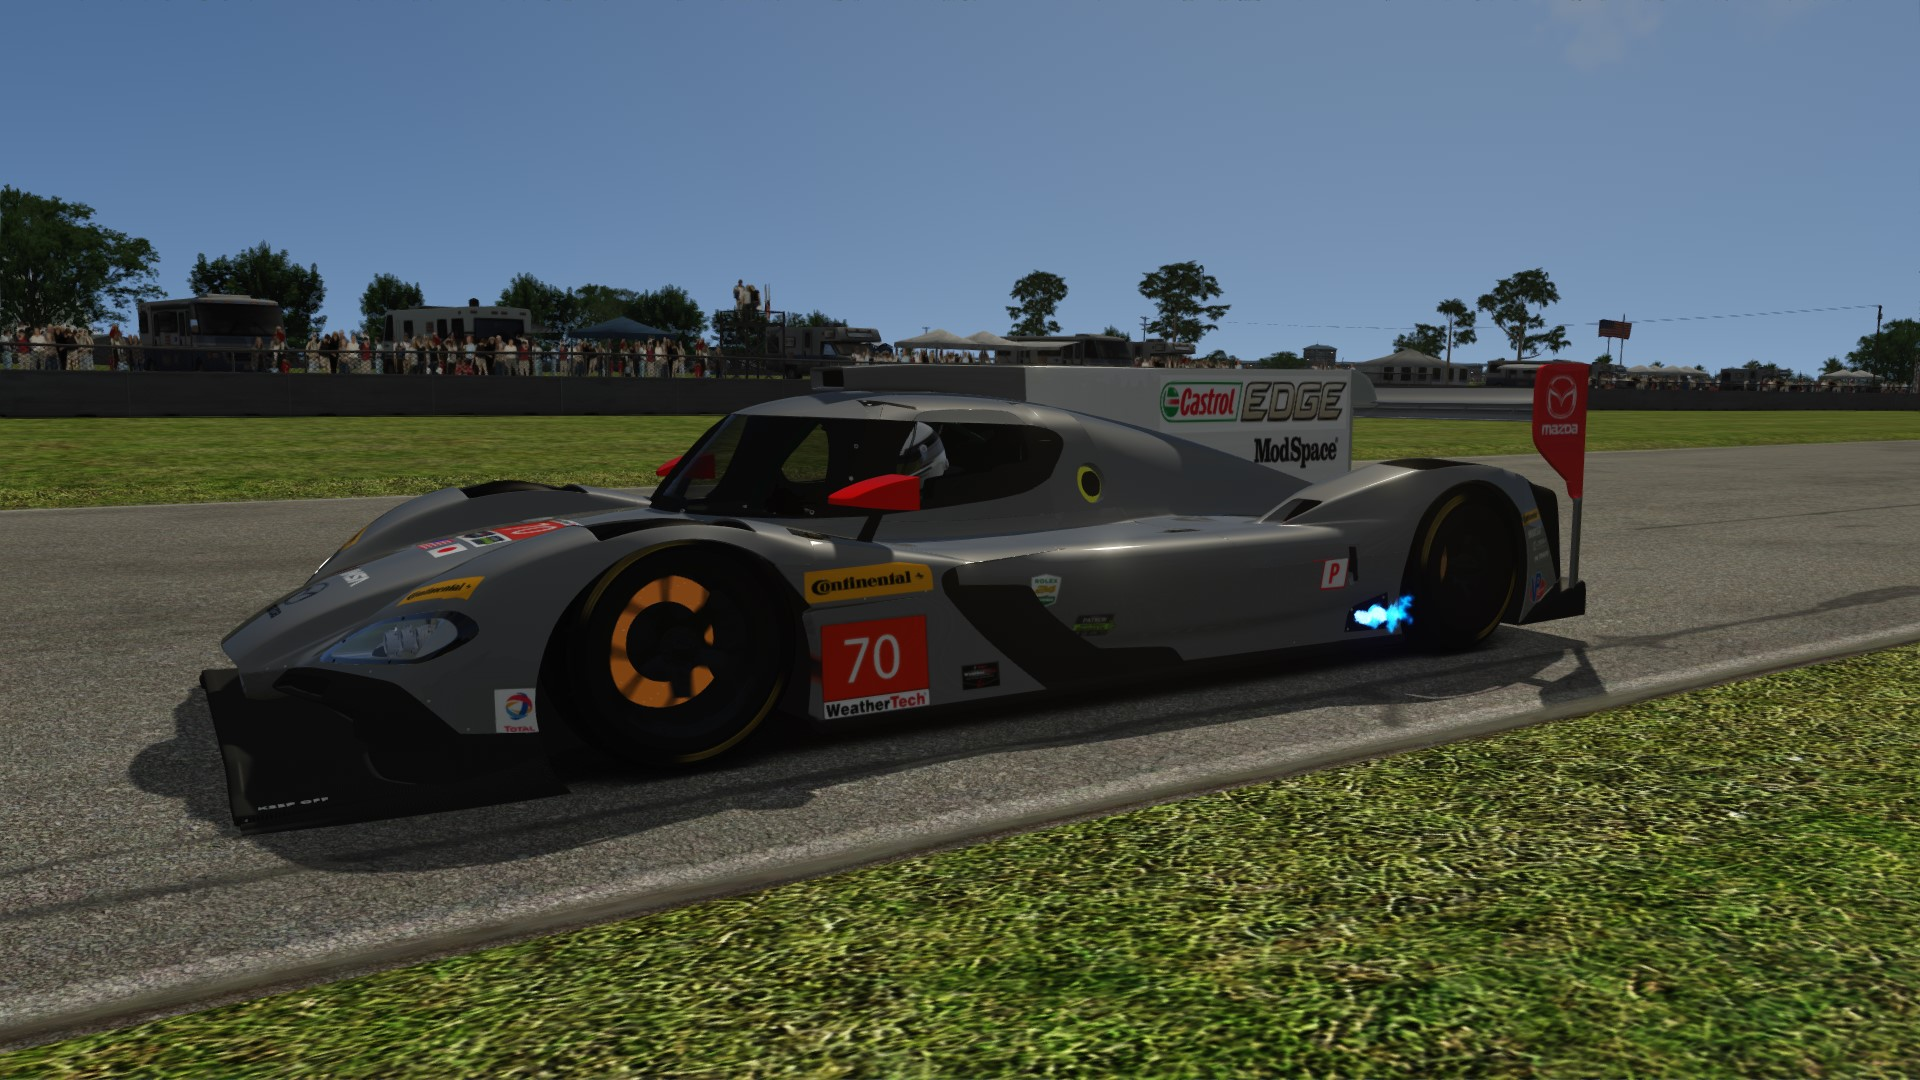 Screenshot_ag_mazda_rt24-p_sebring_1-4-117-16-23-11.jpg